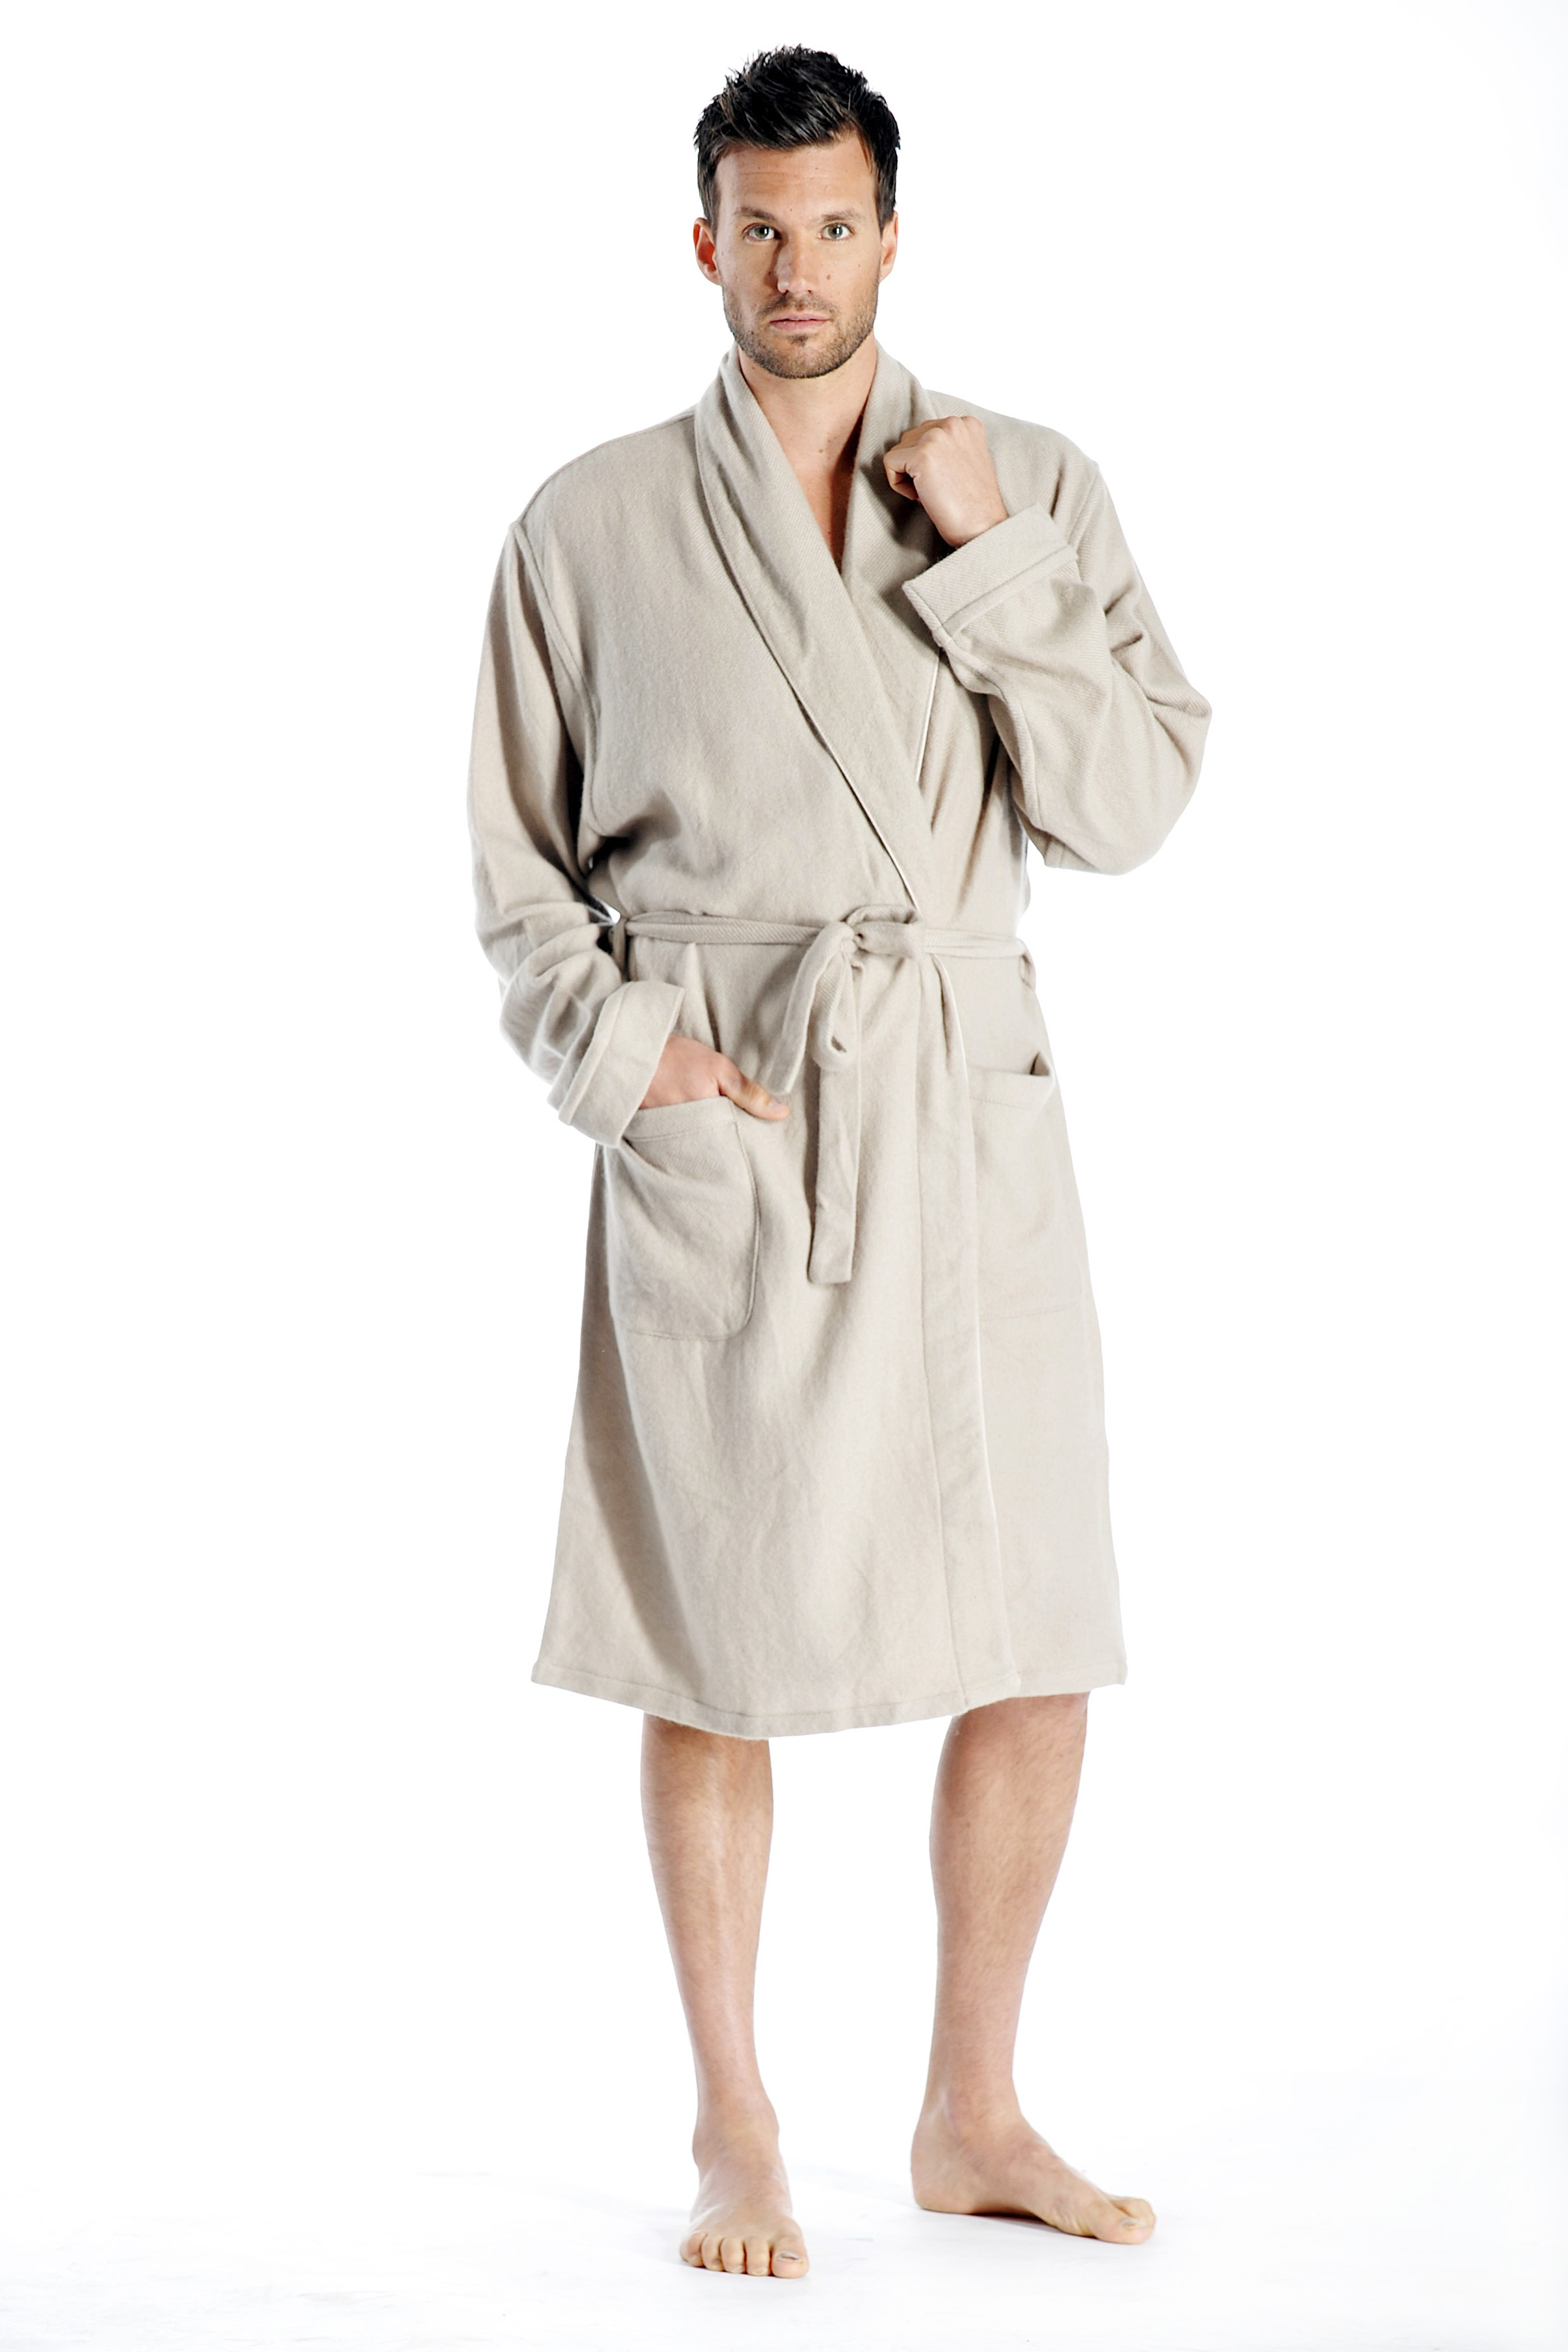 Cashmere Boutique Pure Cashmere Knee Length Robe for Men at Sears.com